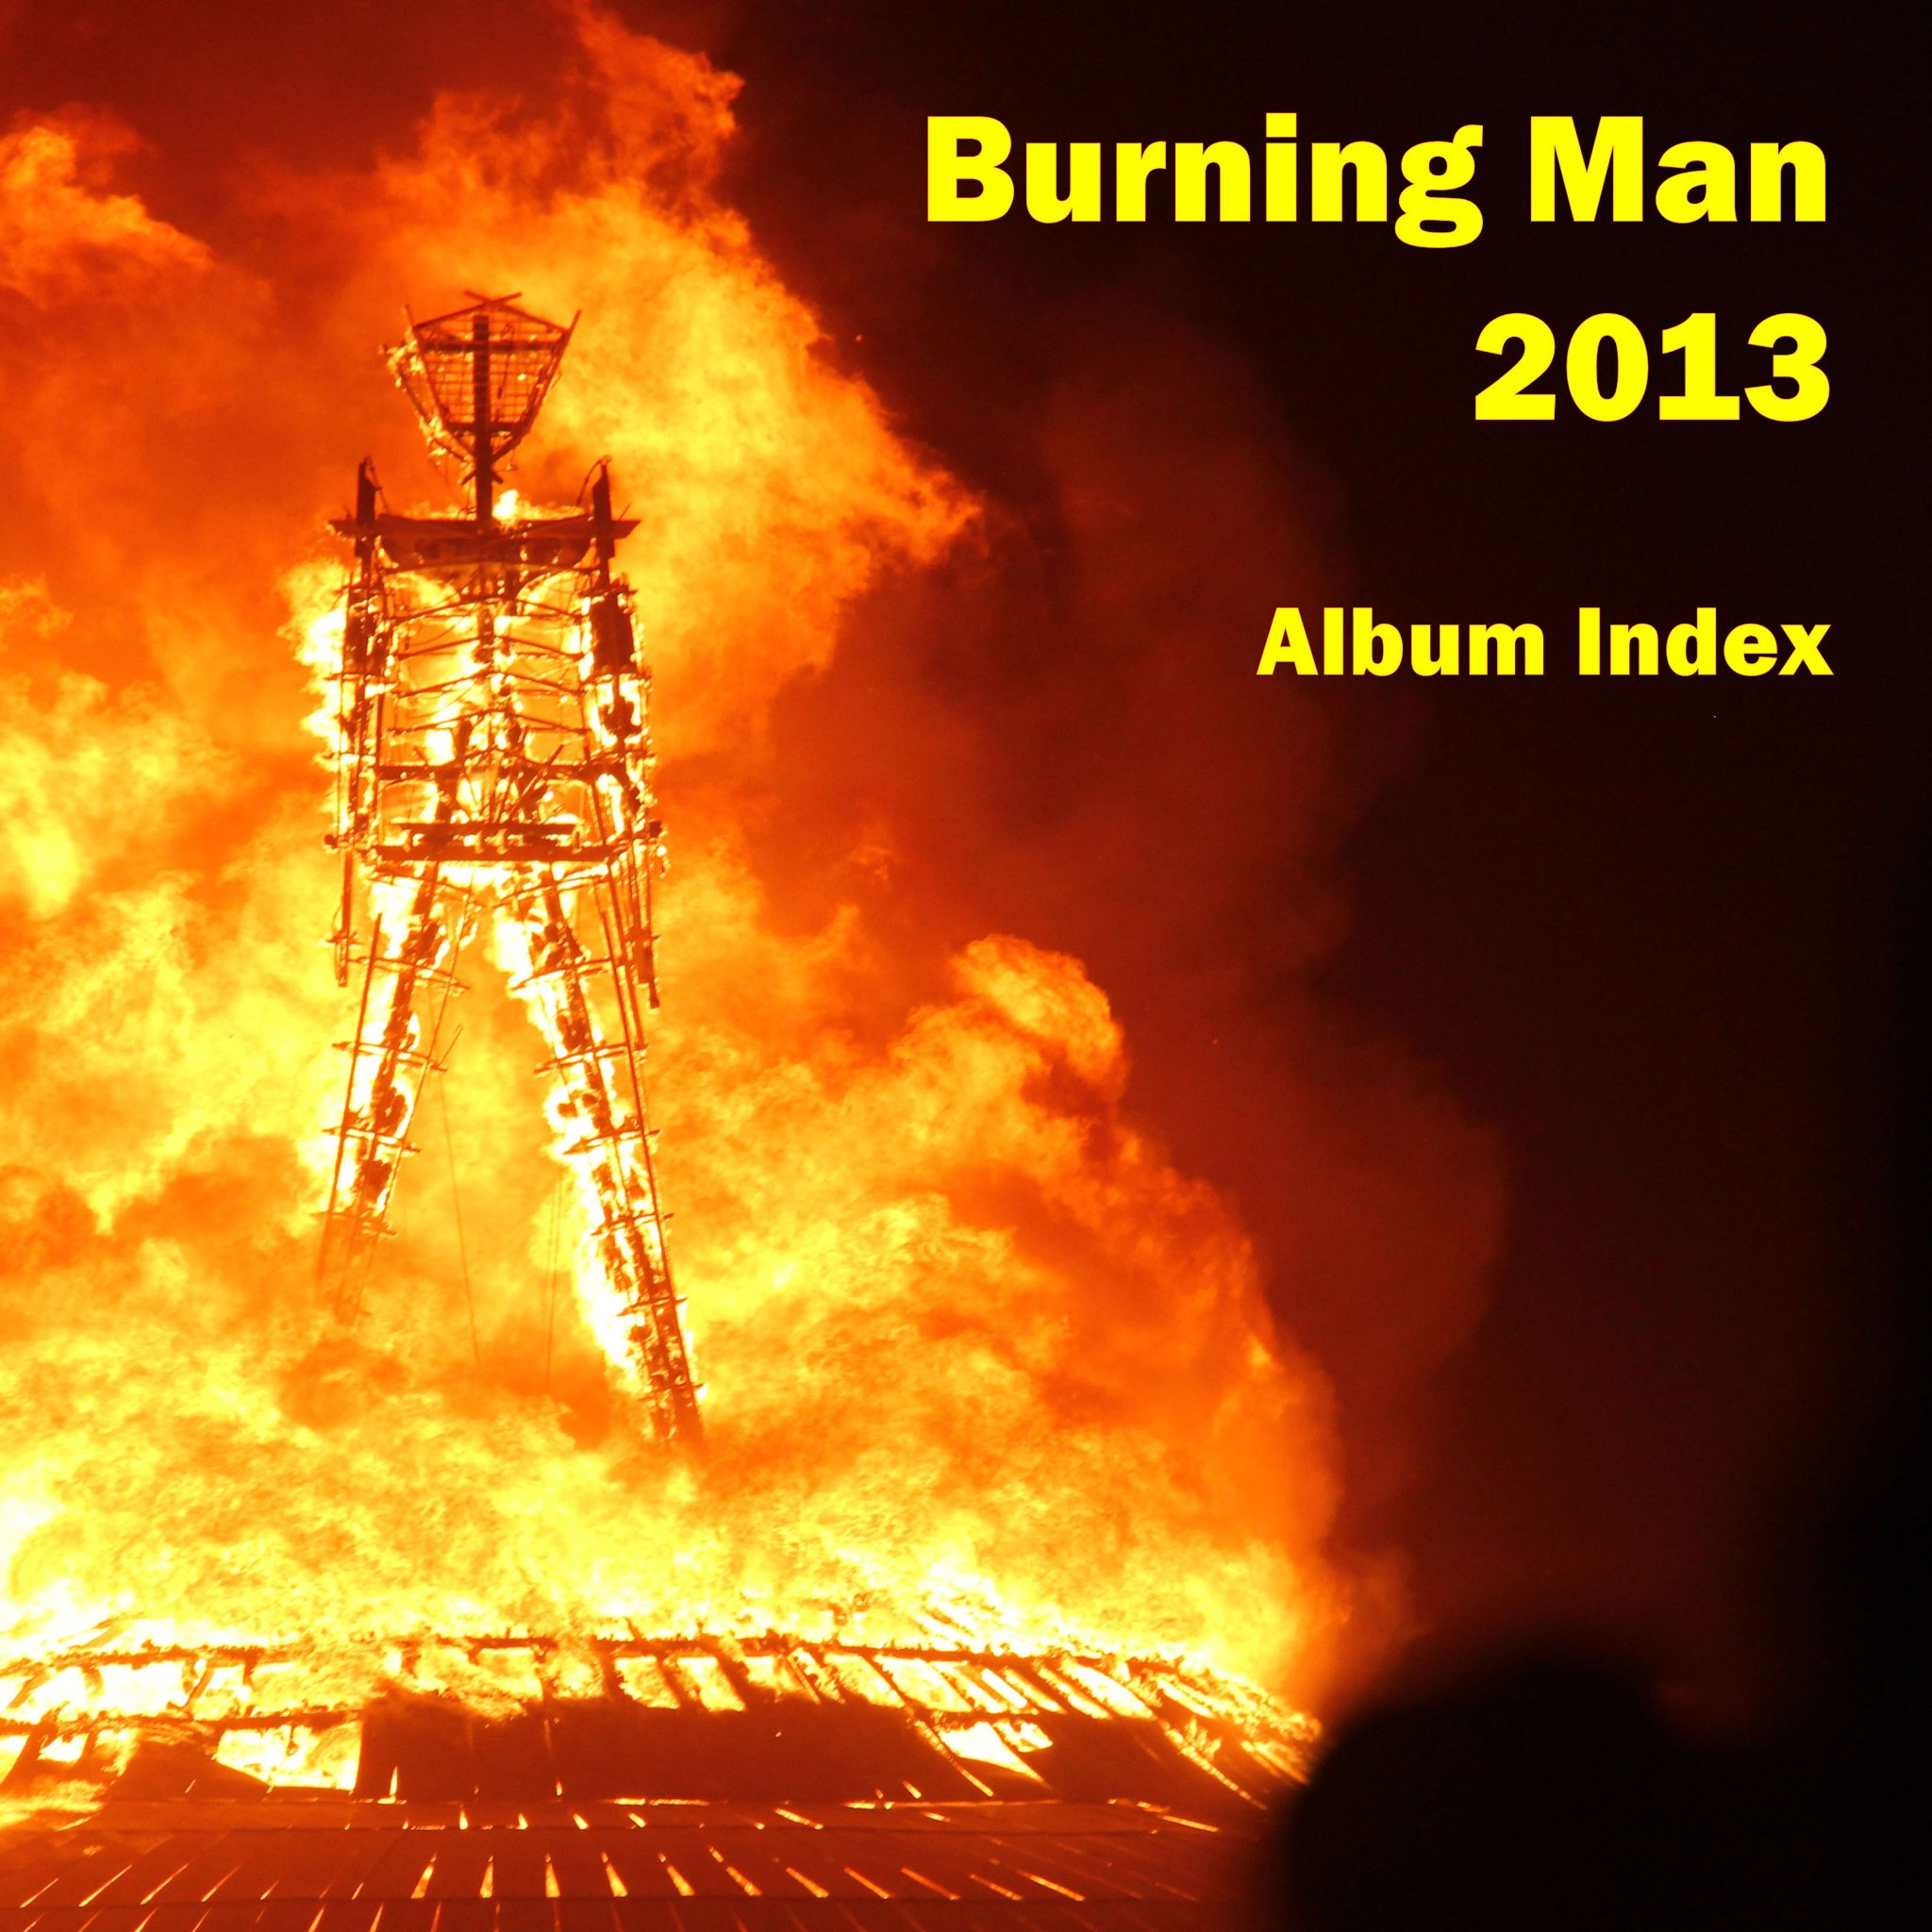 Burning Man 2013 - Album Index